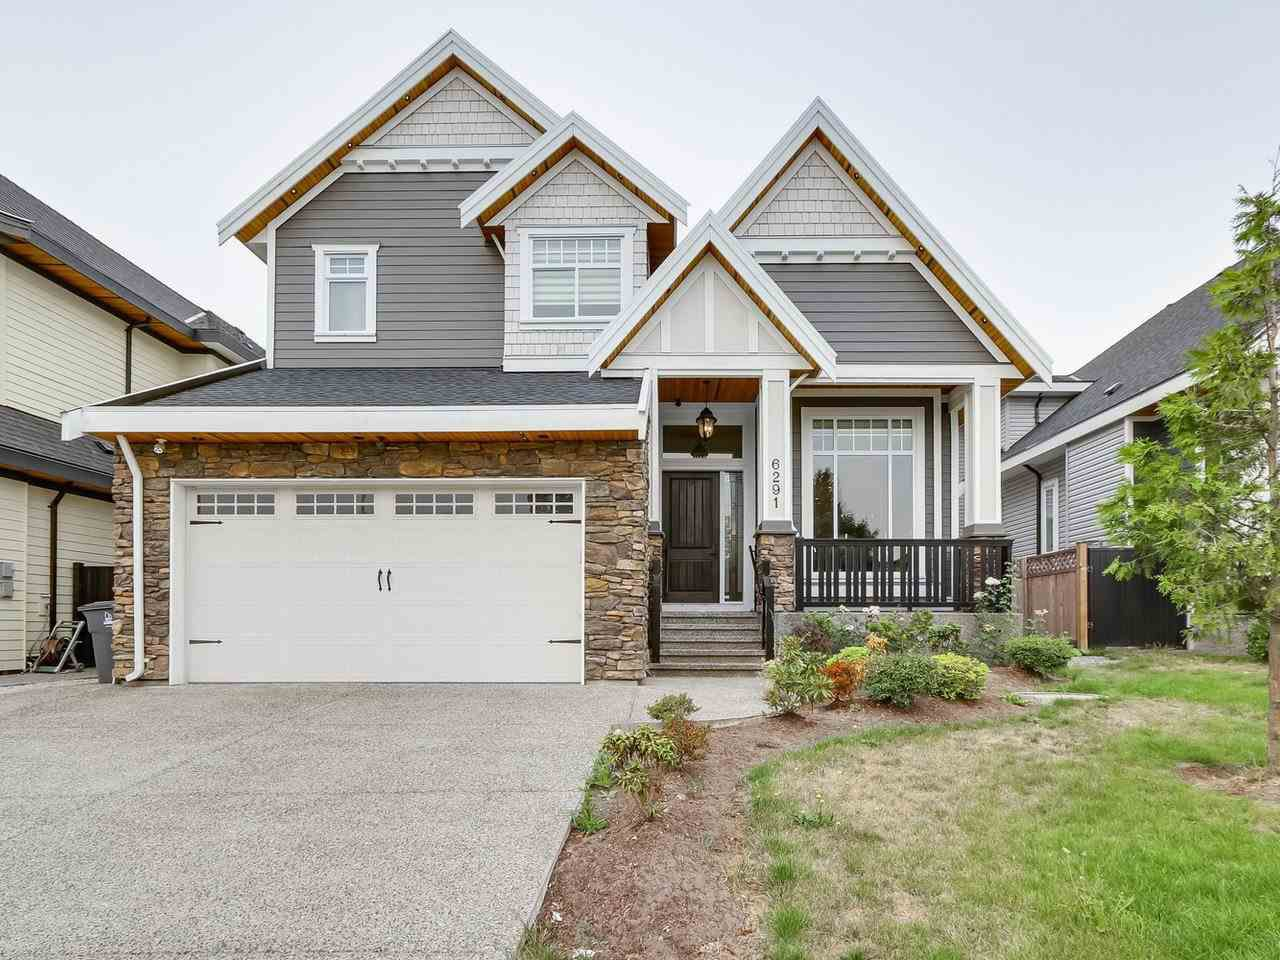 Main Photo: 6291 128A STREET in Surrey: Panorama Ridge House for sale : MLS®# R2200556